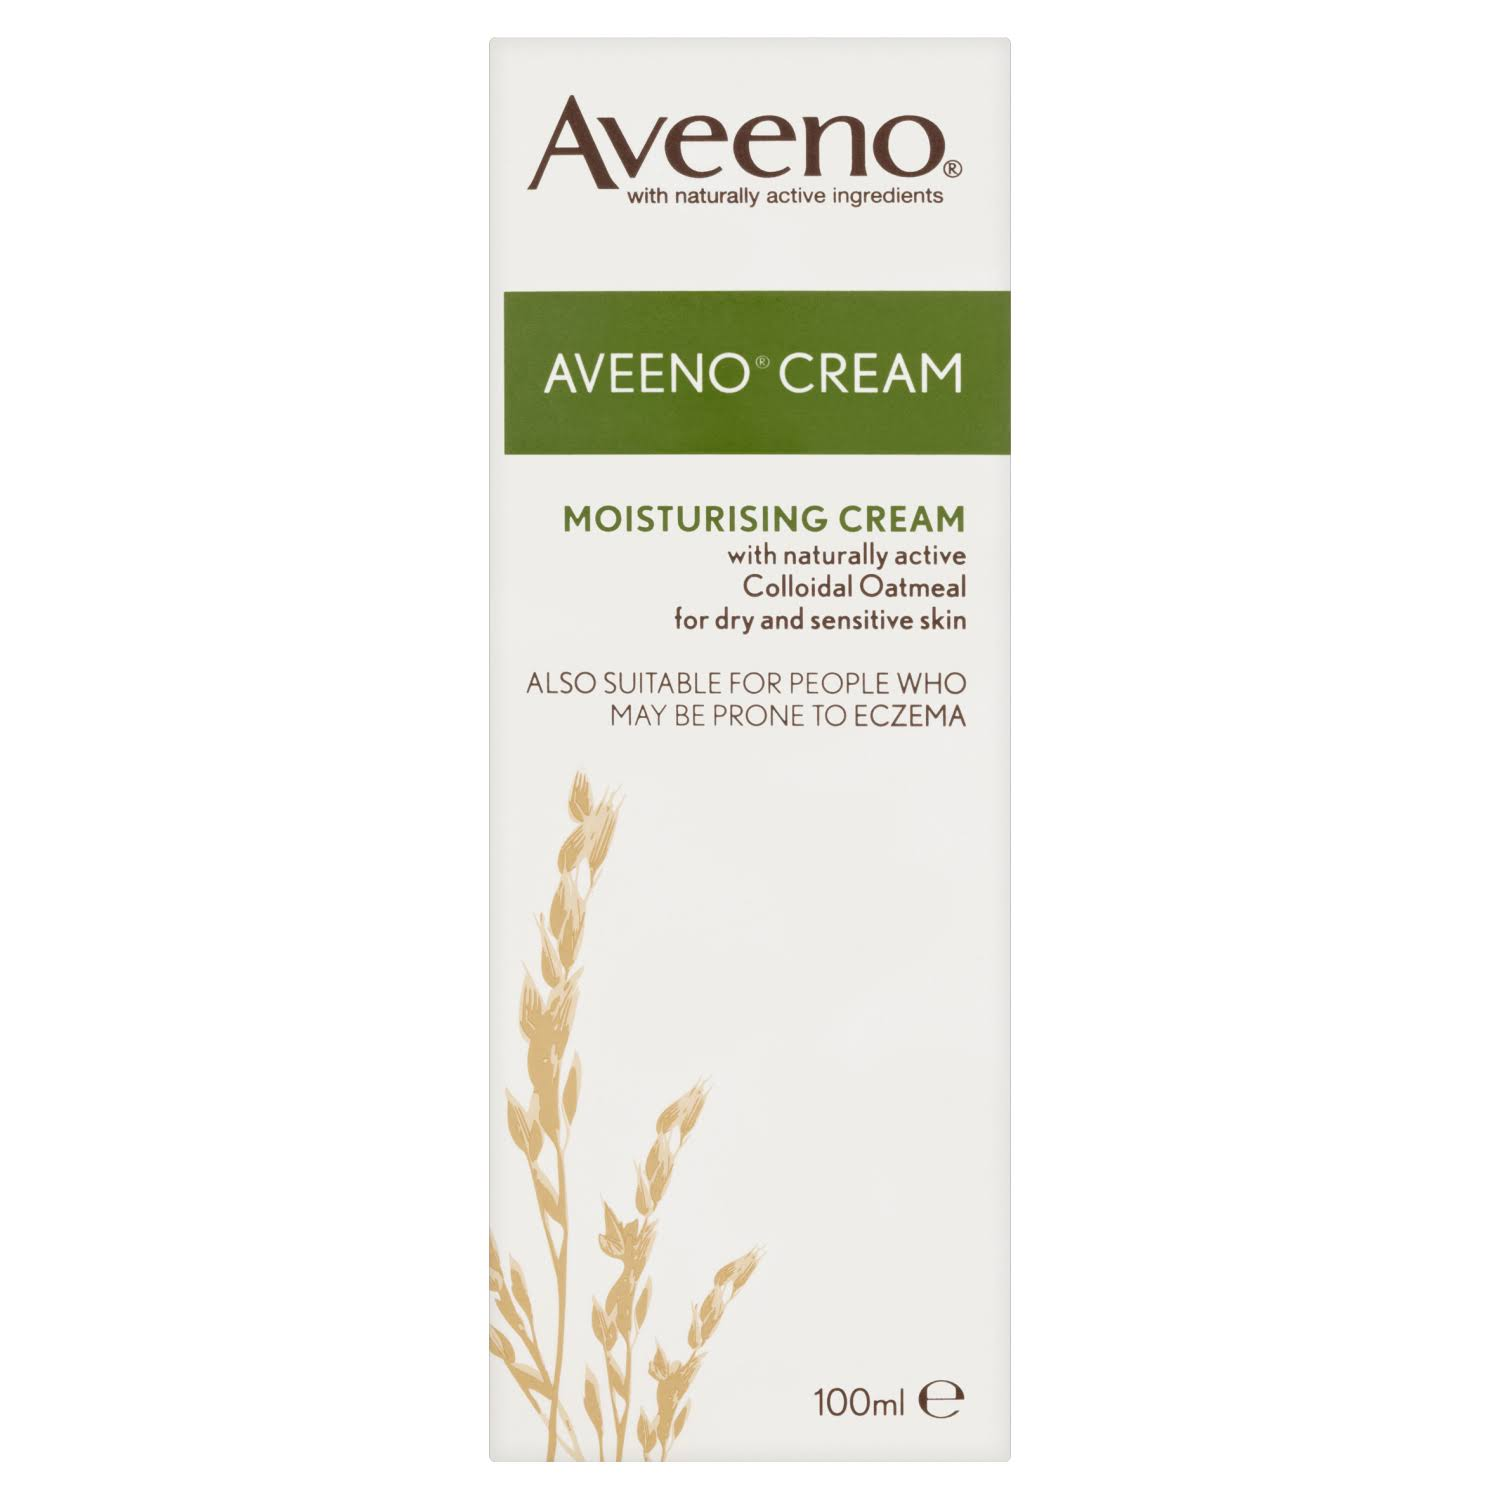 Aveeno Moisturising Cream - 100ml